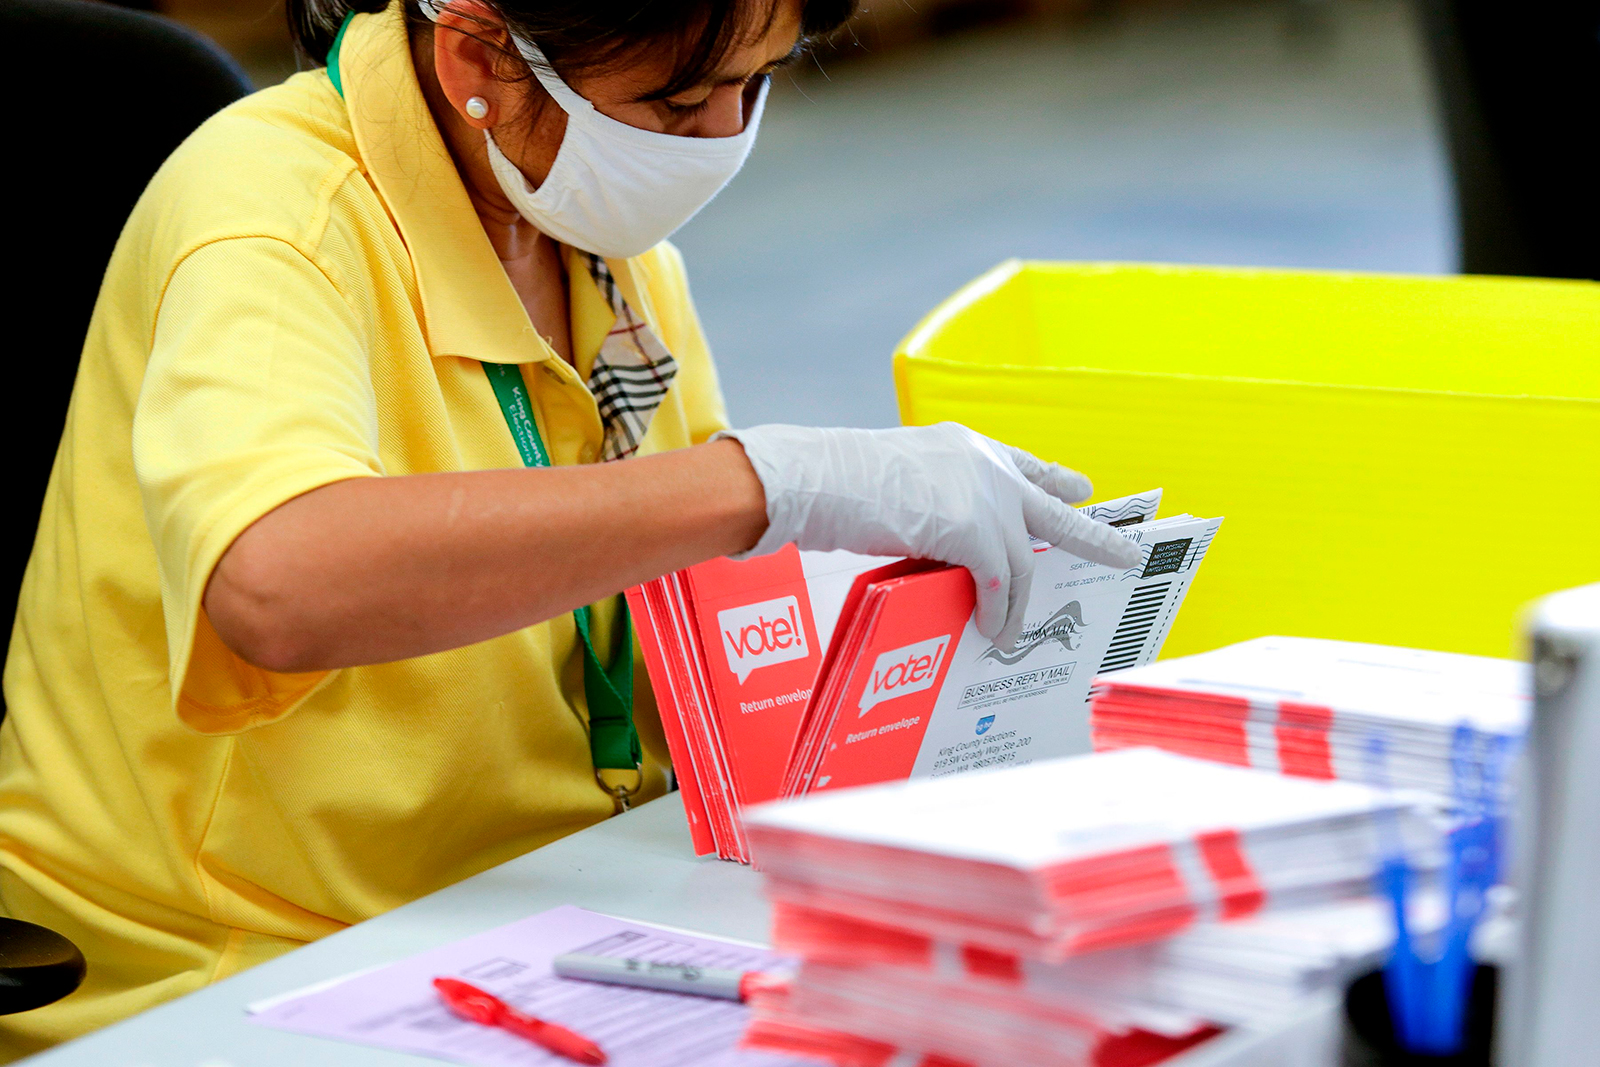 An election worker opens envelopes containing vote-by-mail ballots for the August 4 Washington state primary at King County Elections in Renton, Washington on August 3, 2020. (Jason Redman/AFP/Getty Images via CNN Wire)